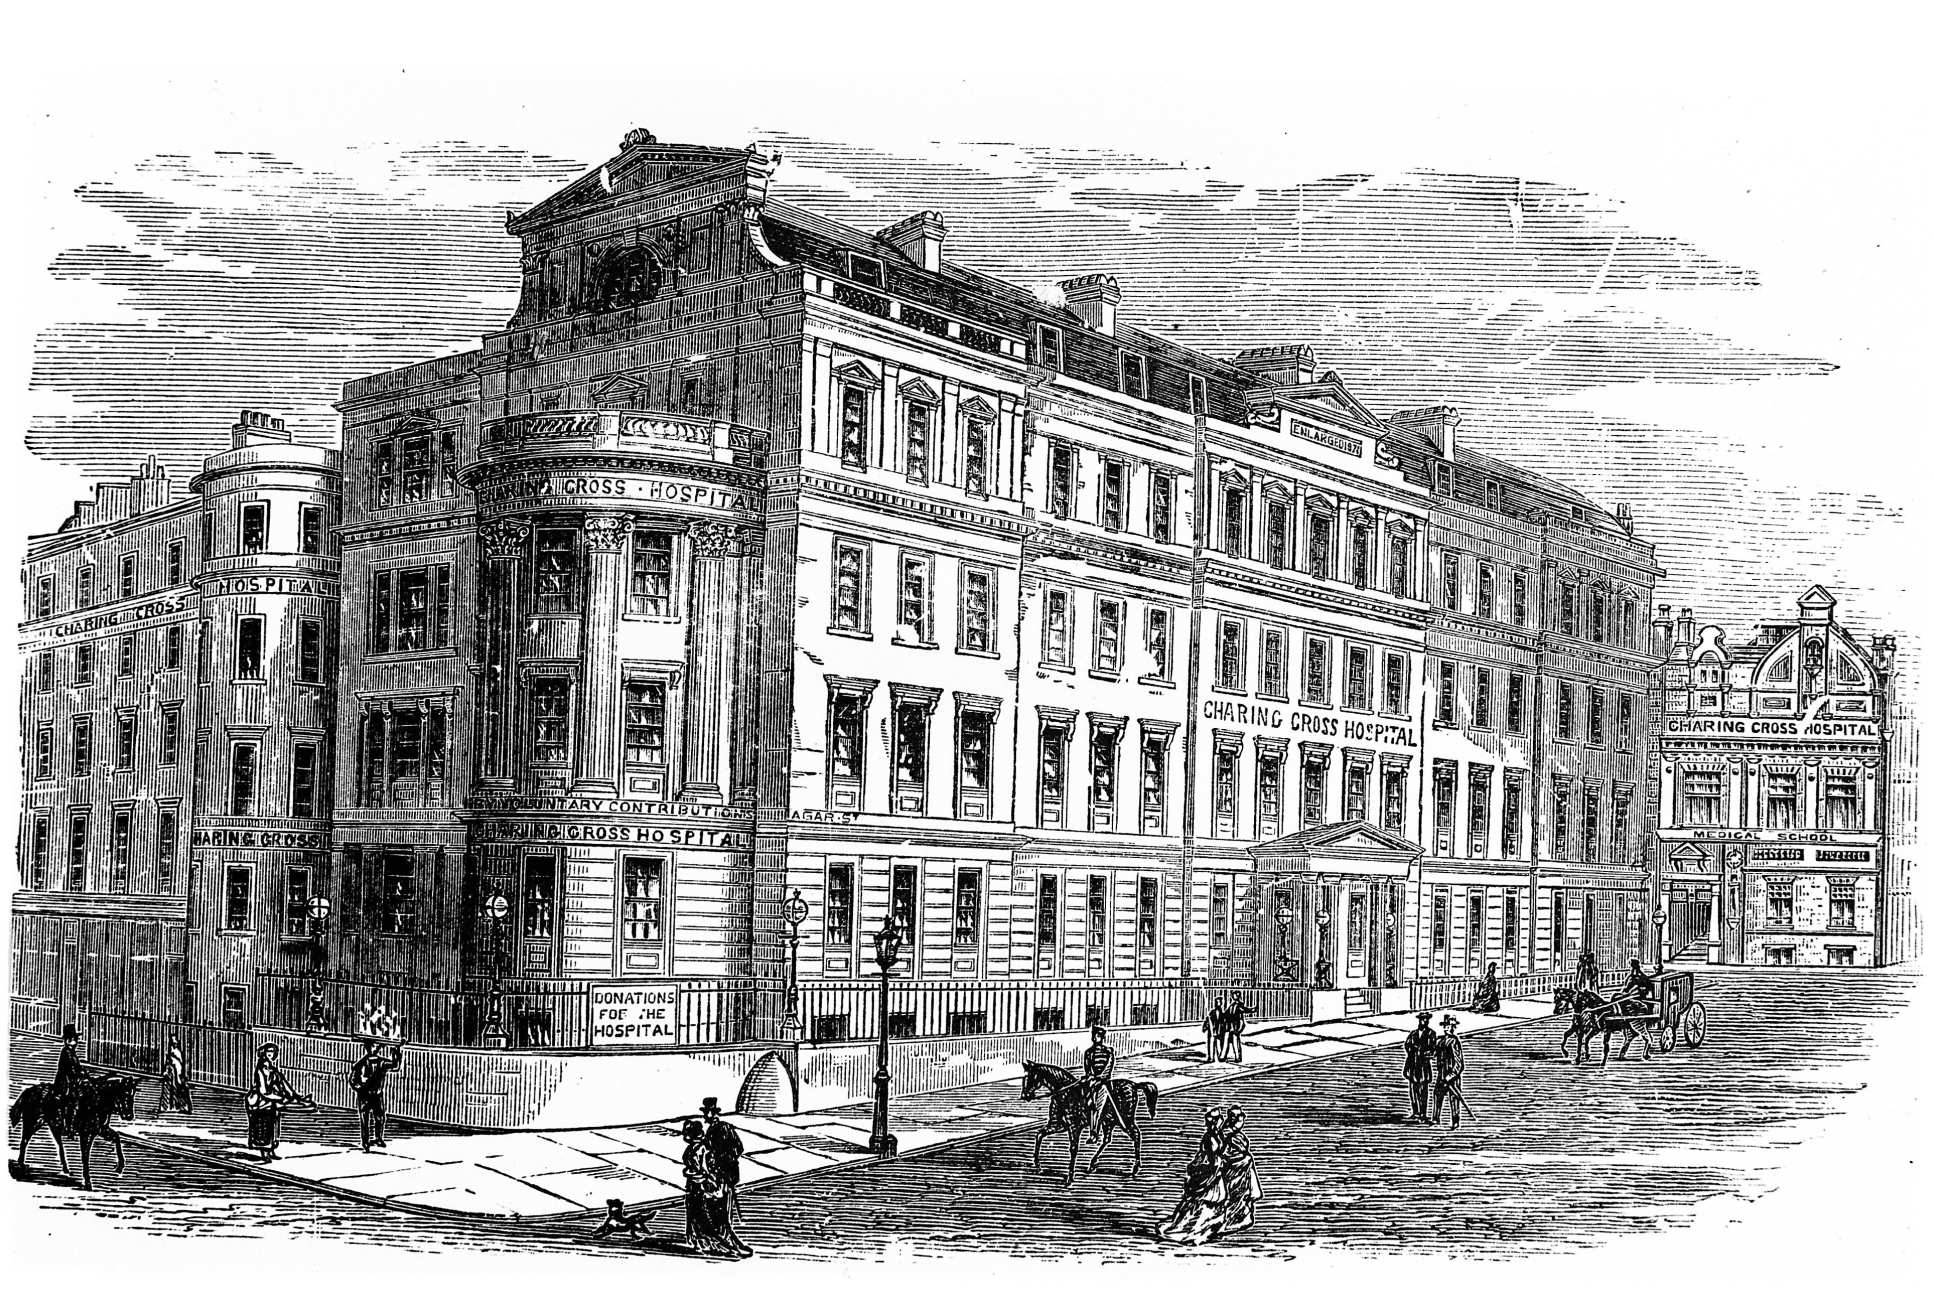 Charing Cross Hospital in 19th century